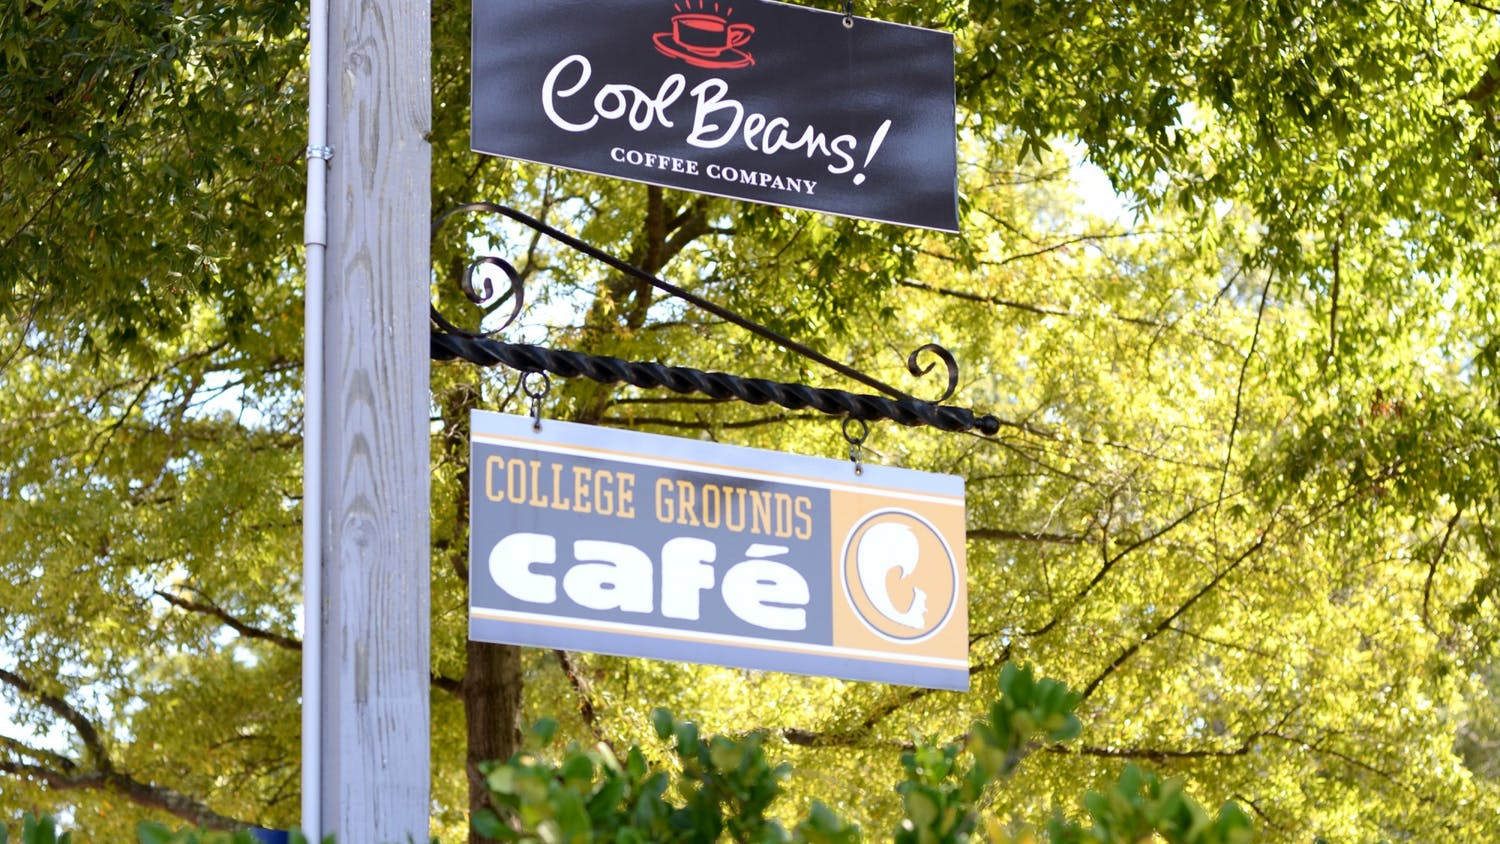 Cool Beans Coffee Co. is a favorite study spot for students that is only a few steps away from campus.